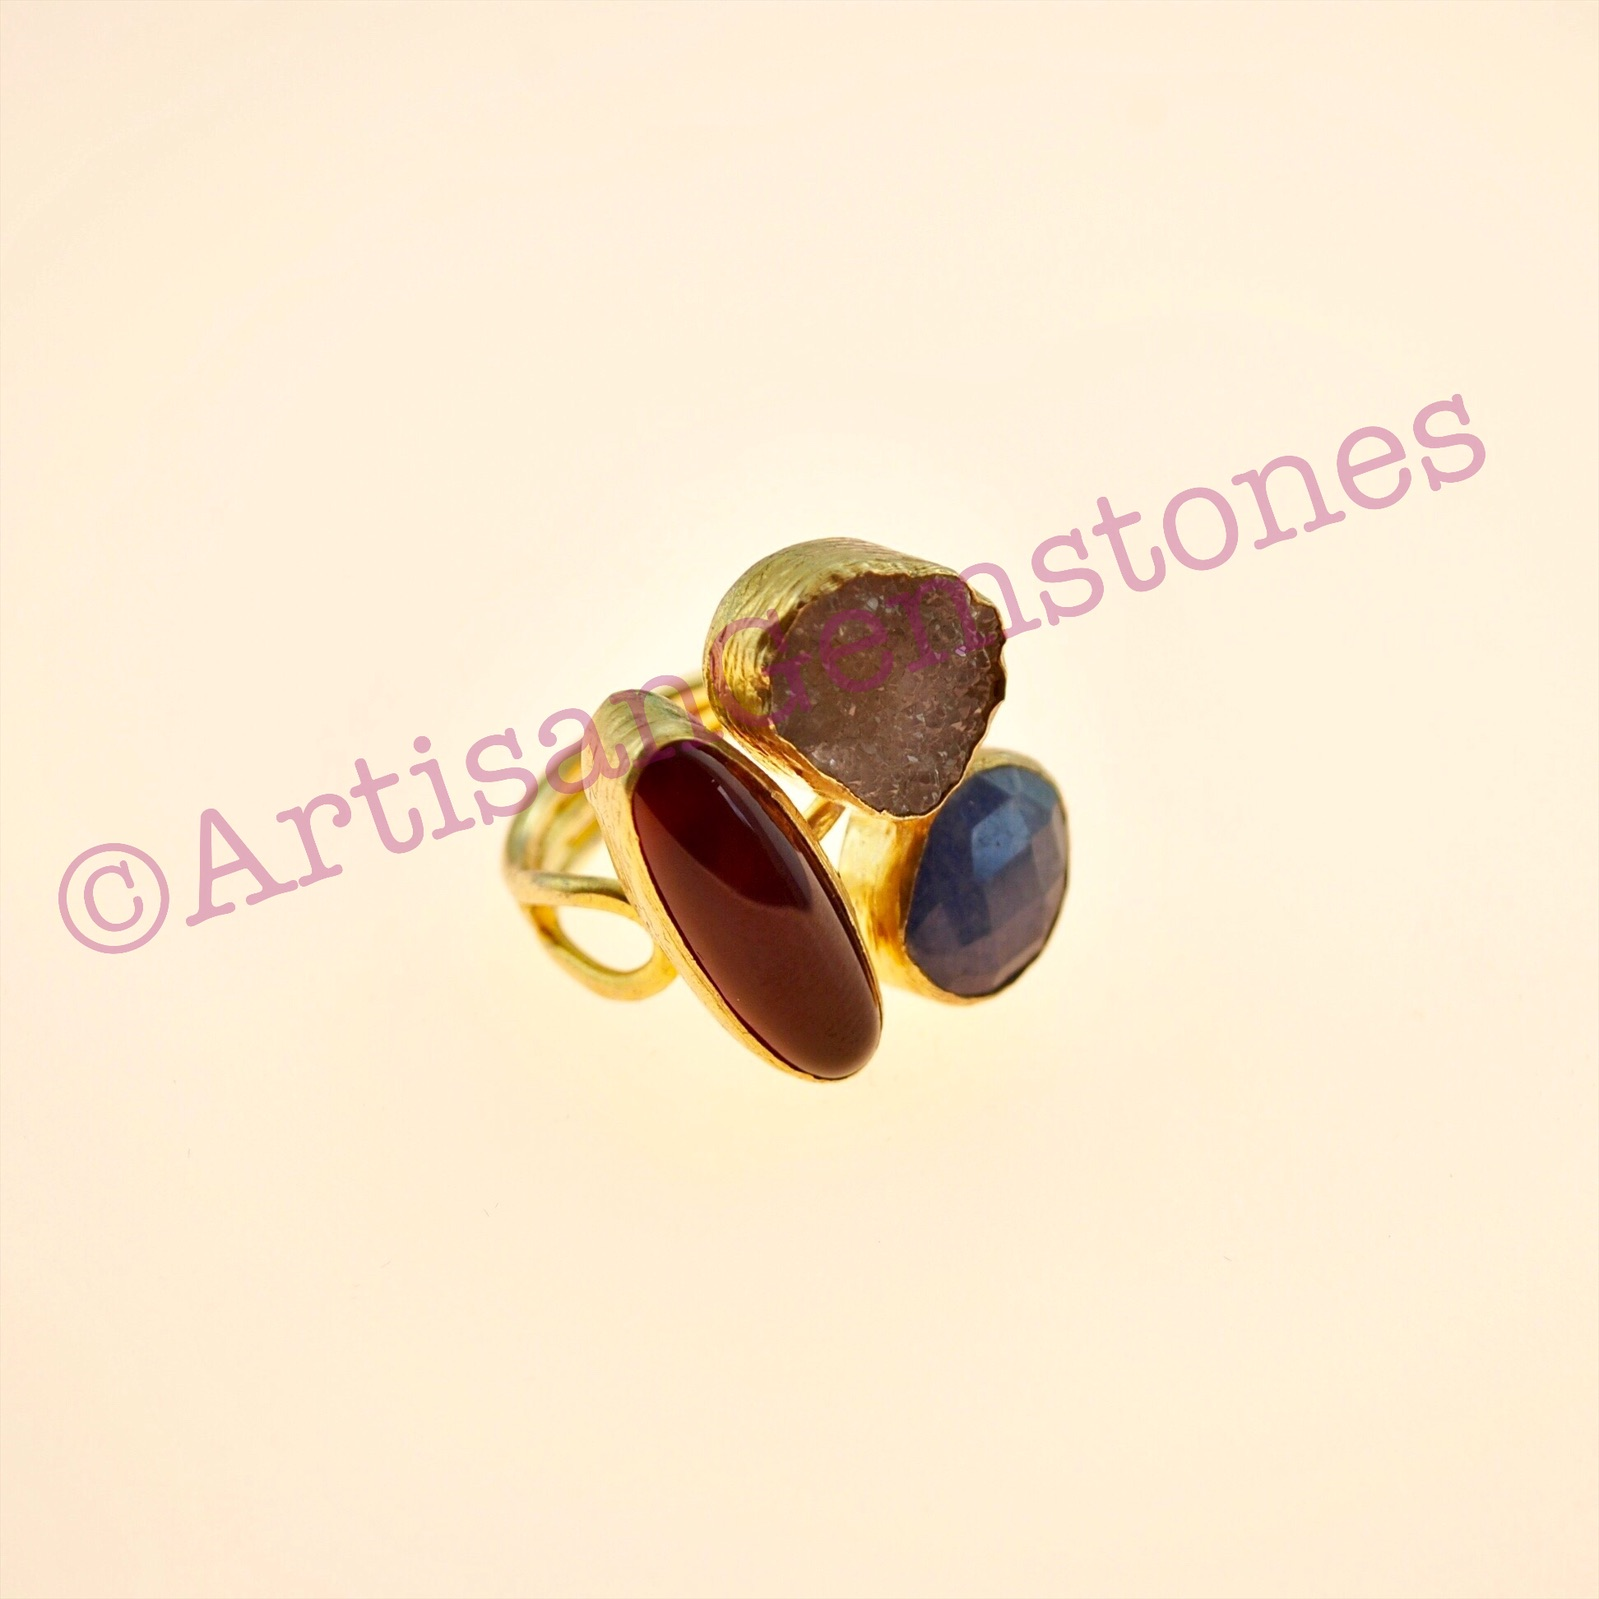 Triple stone ring in Natural Stone 22k Gold vermeil with adjustable size